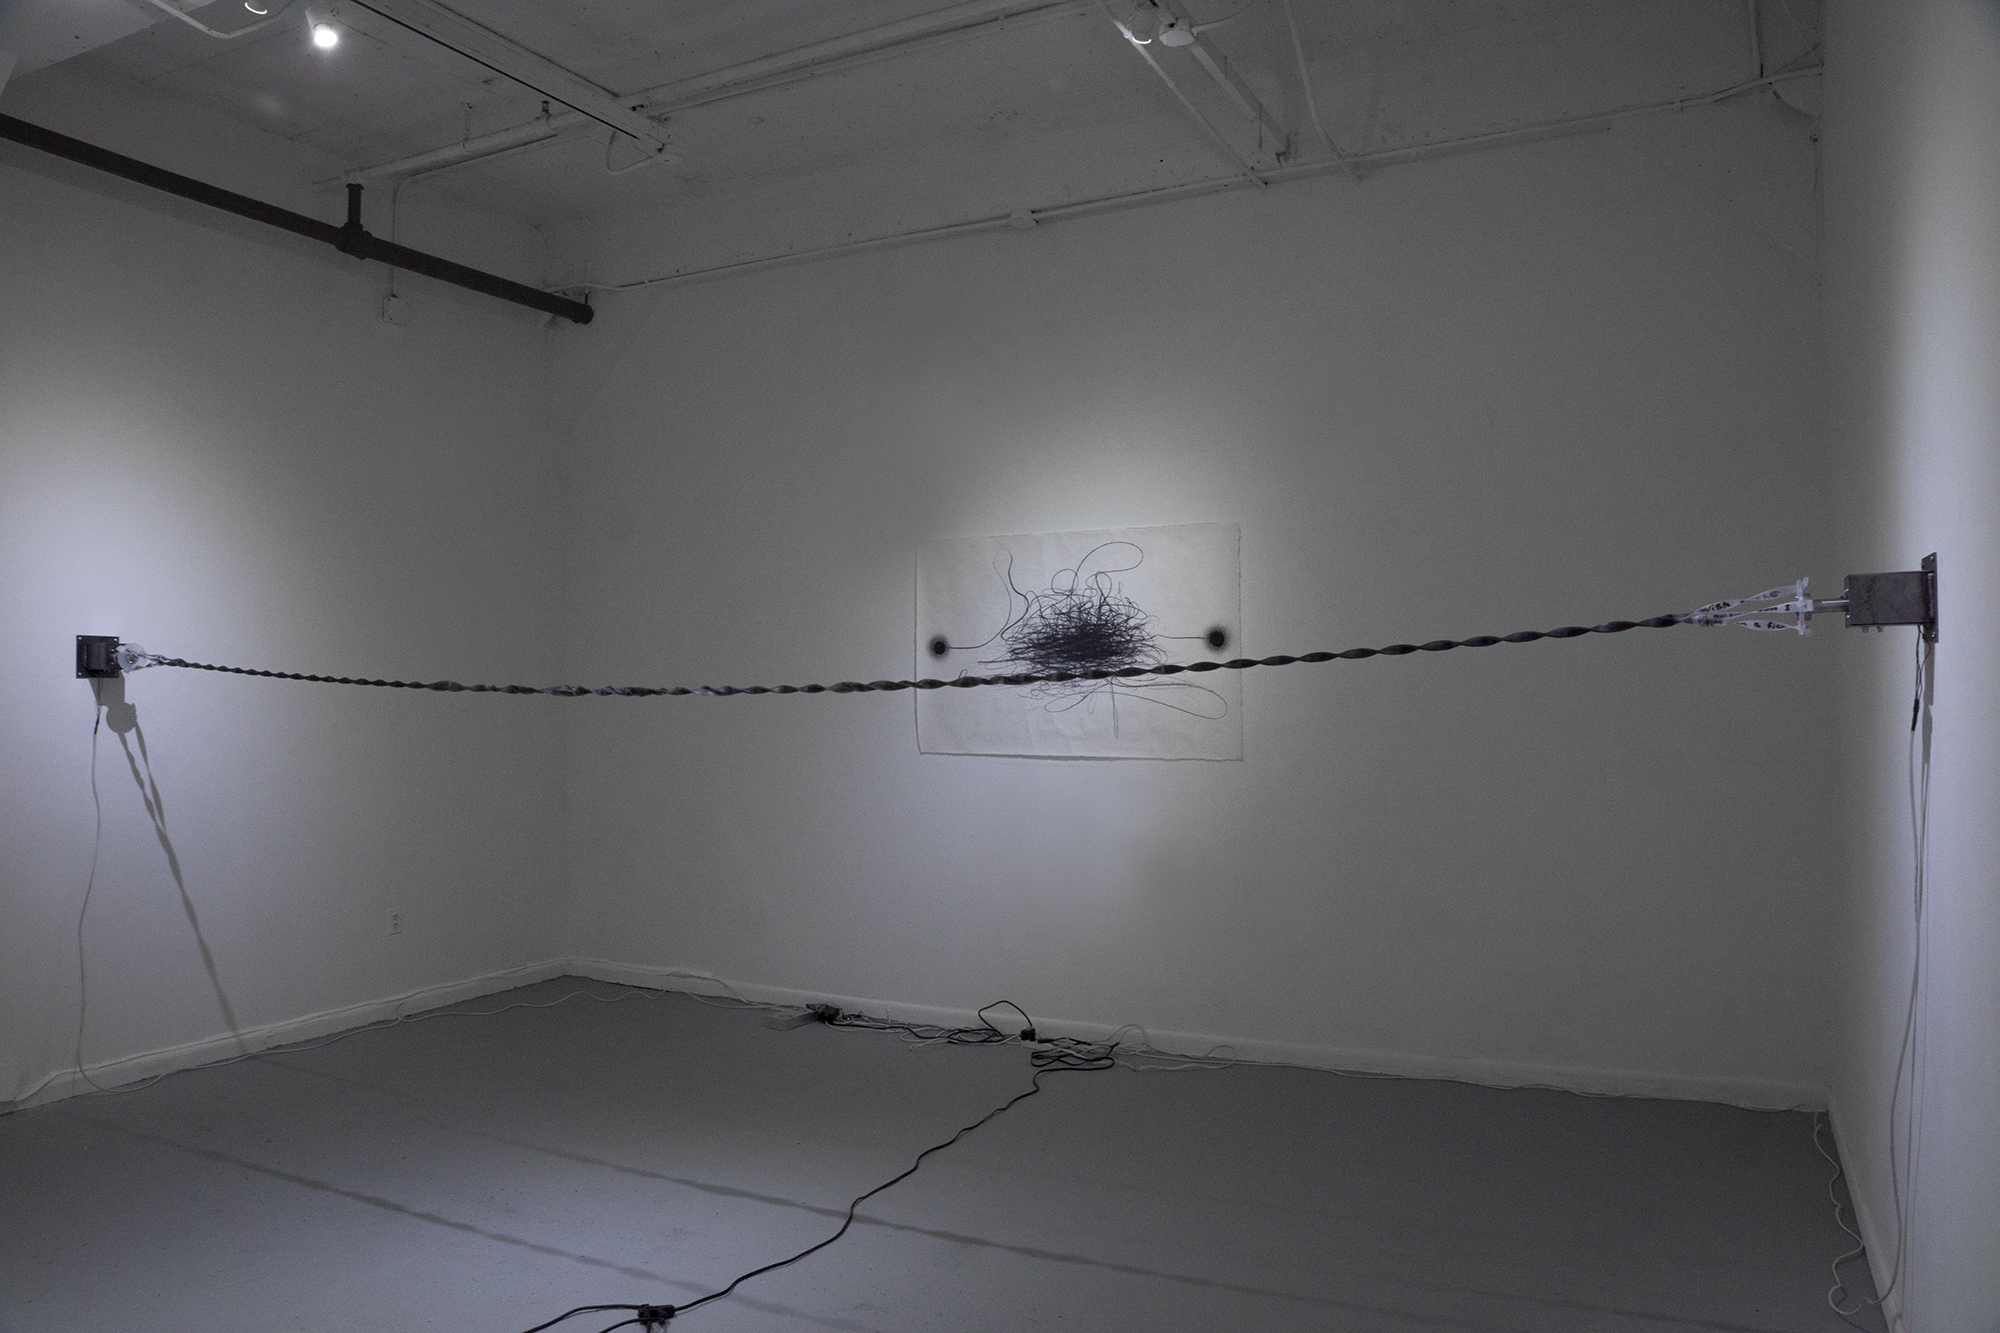 """  Entangled Descriptions  "" , 2017  Stepper motors, texts painted with dark gray plaster on three translucent silicone rubber bands, Arduino (programming board), Dimensions variable  Courtesy Hyunjung Rhee & Carrie Able Gallery"